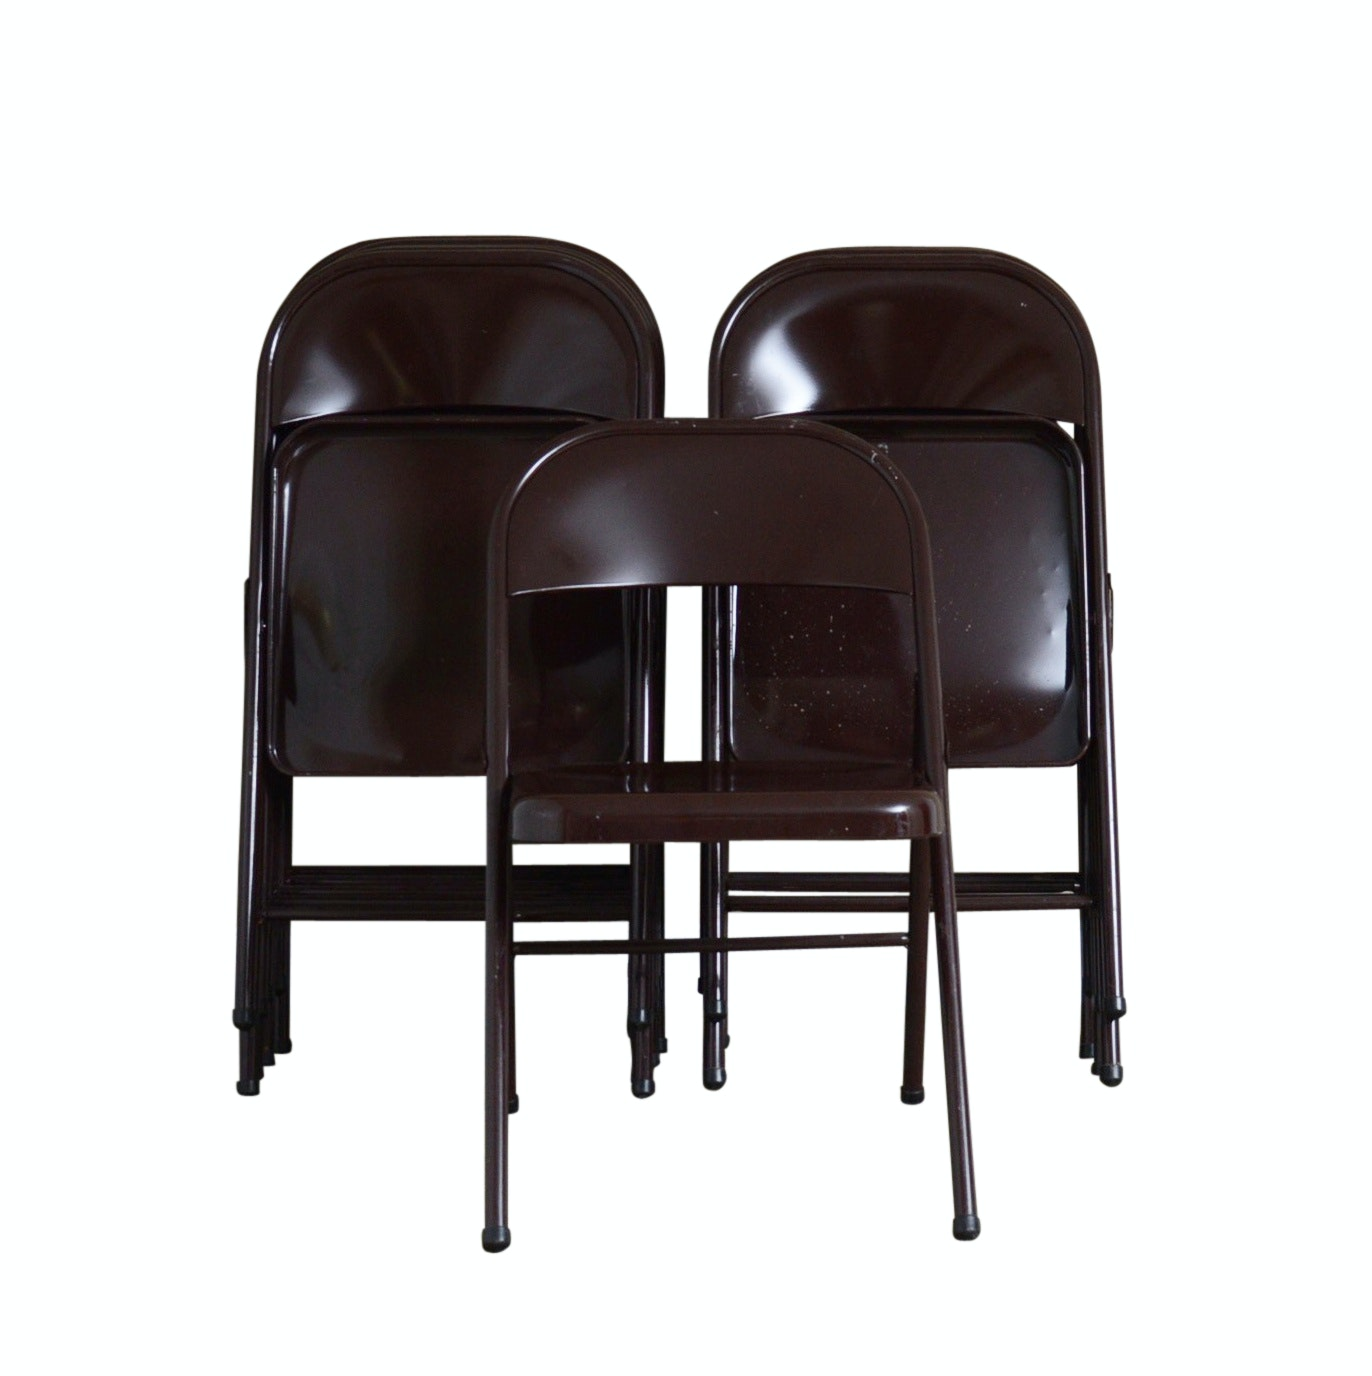 Grouping of Ten Brown Metal Folding Chairs